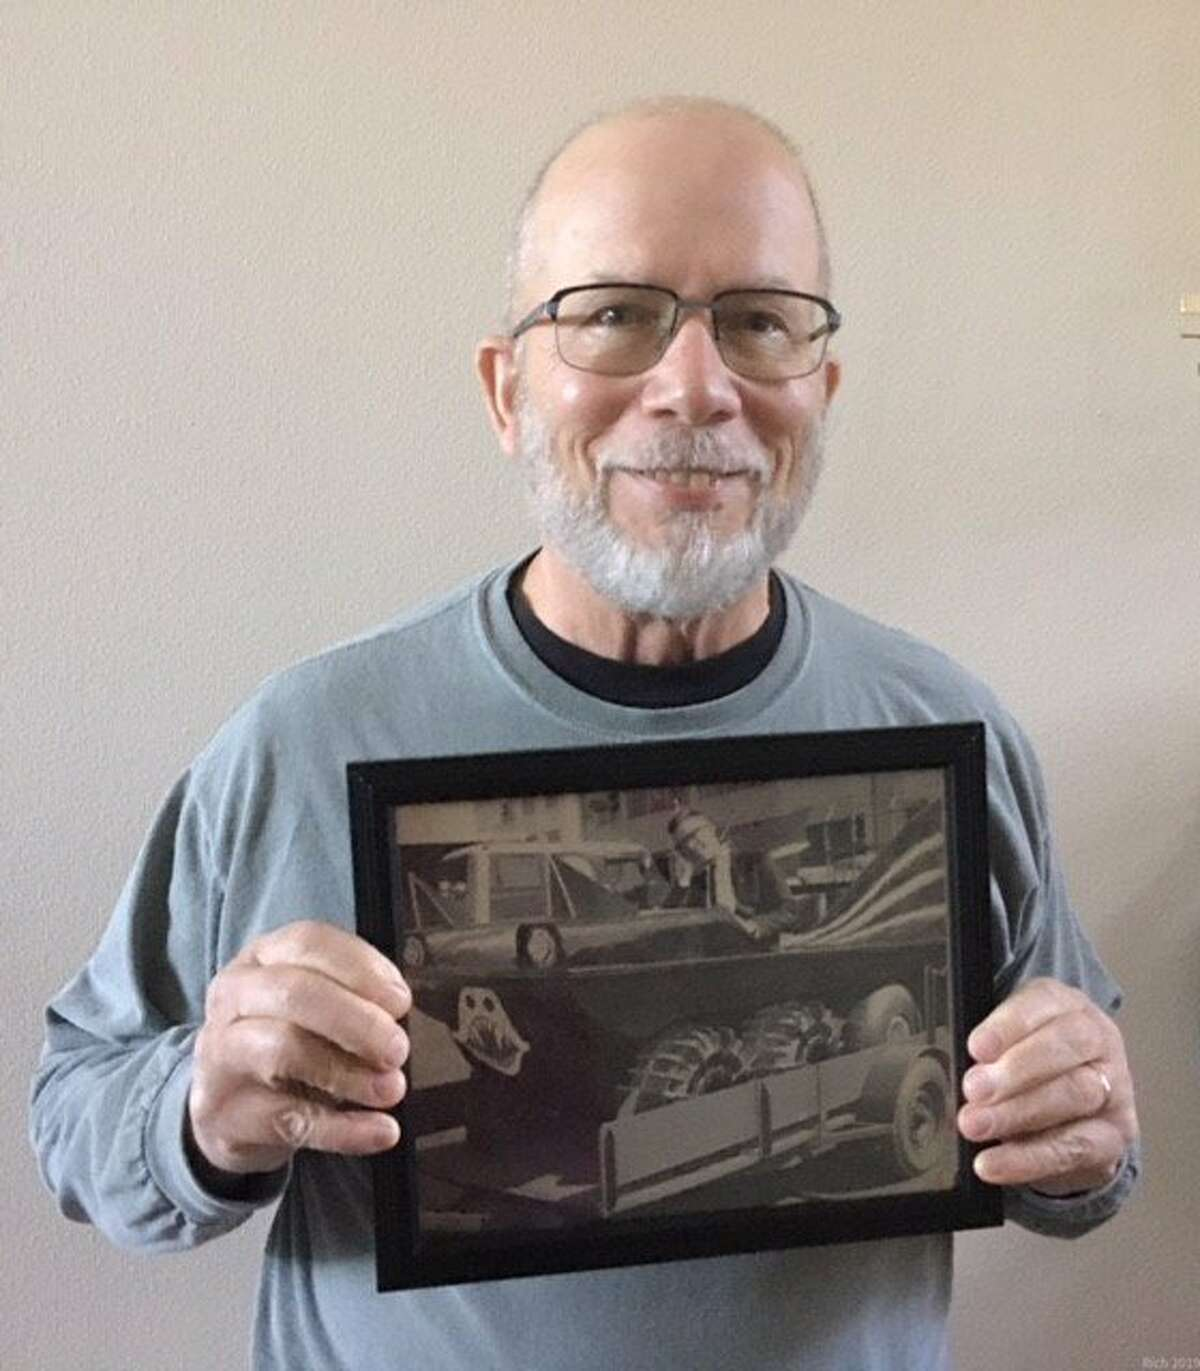 Rich Morse holding the Chronicle photo of him in the Batmobile, 2020